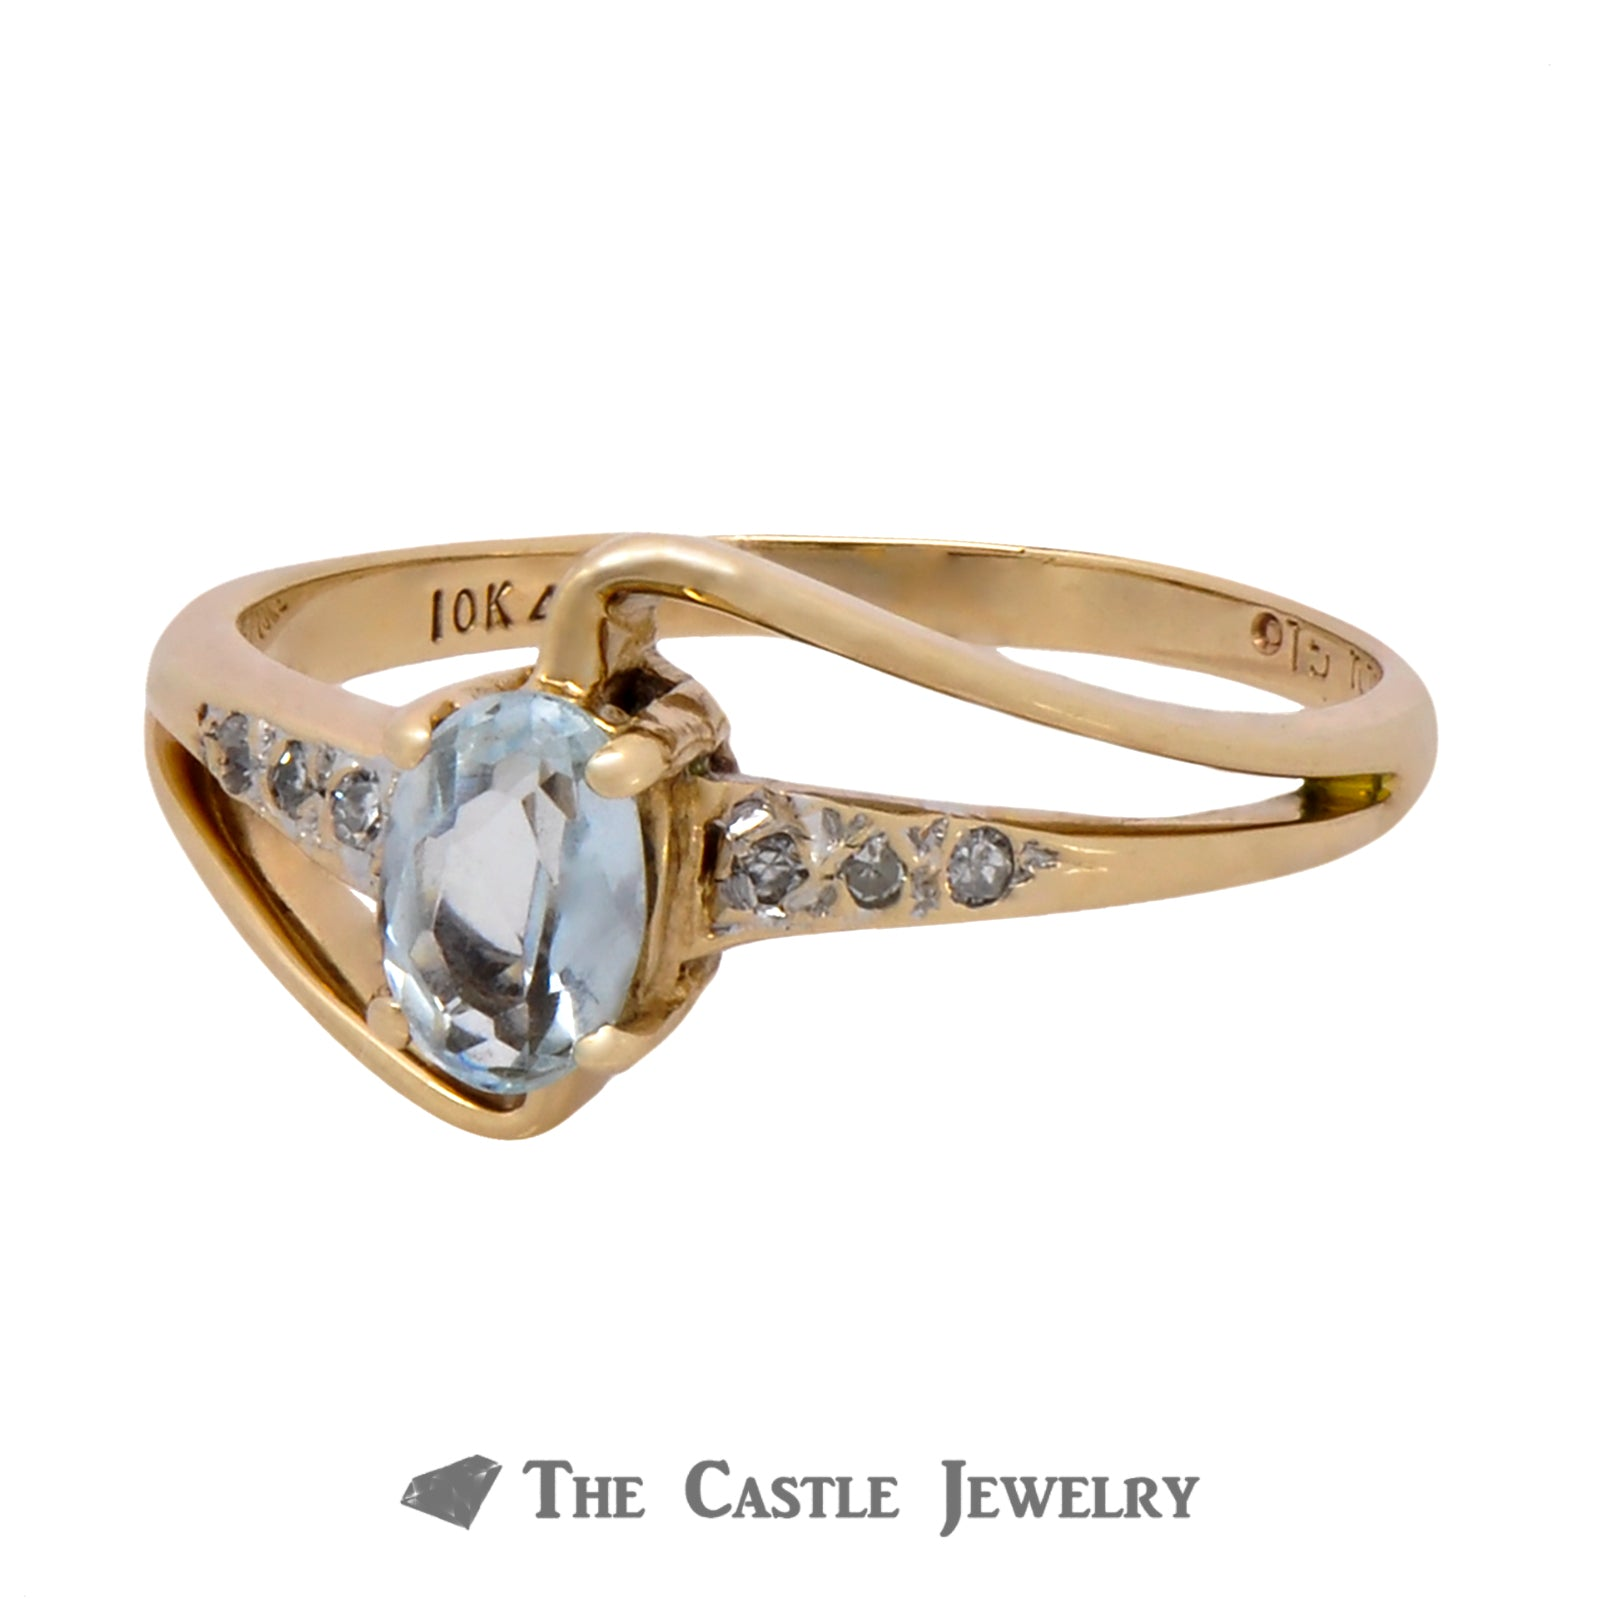 Oval Cut Aquamarine Ring with Diamond Accents in Curved Bypass Setting-2